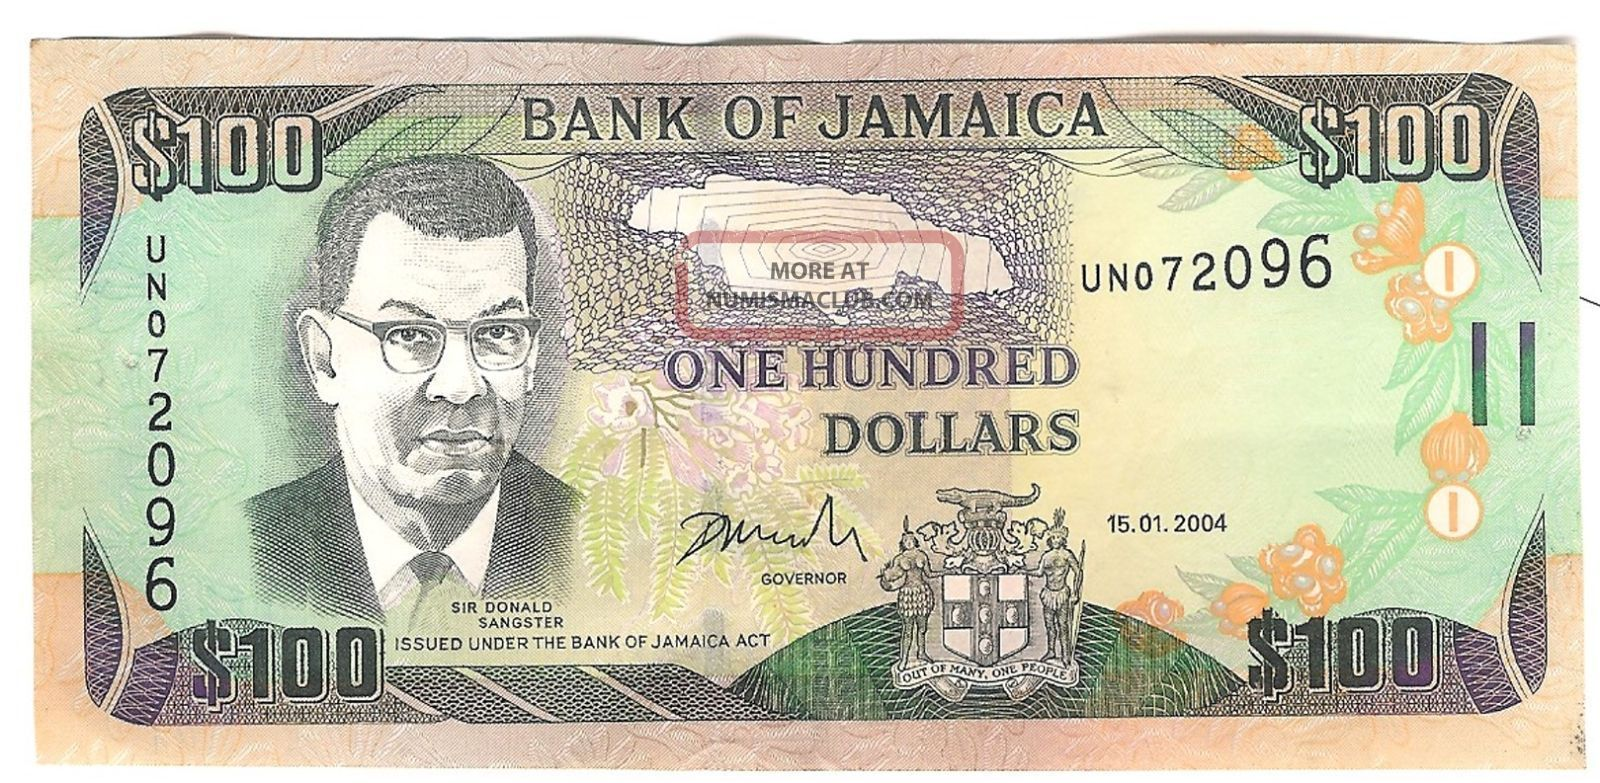 bank of jamaica Find great deals on ebay for bank of jamaica in jamaican coins shop with confidence.